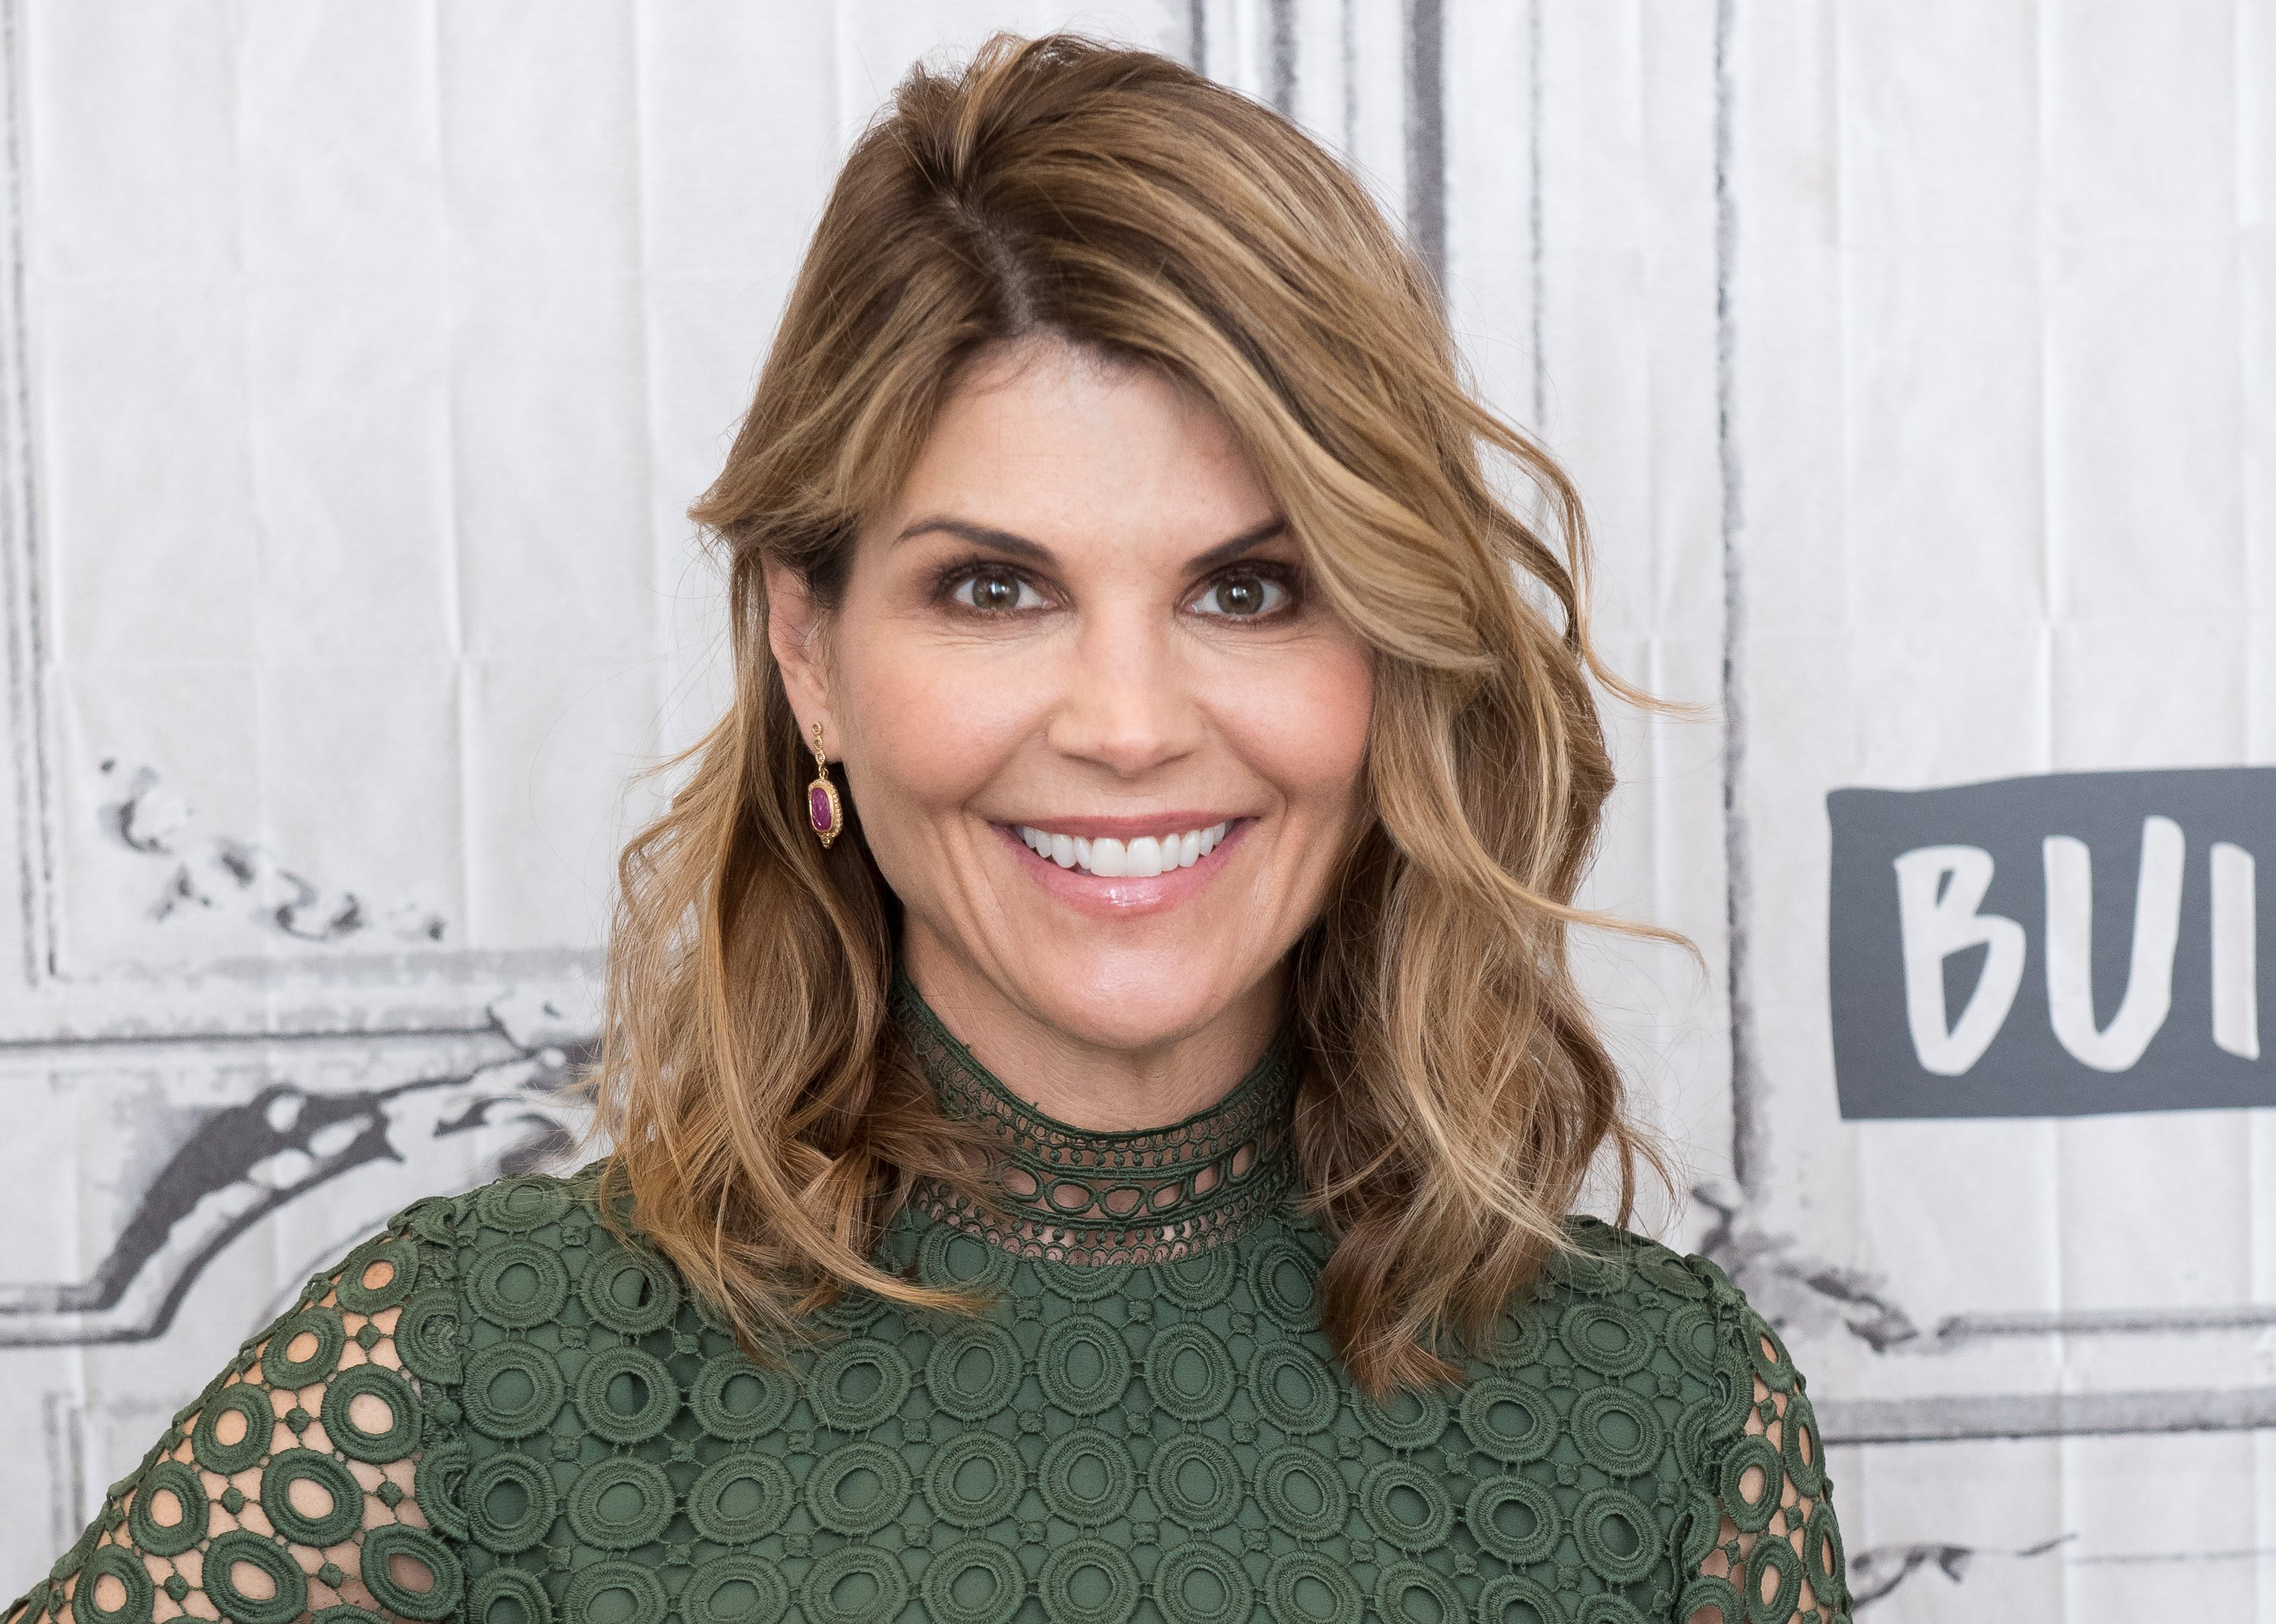 Lori Loughlin visits Build Series at Build Studio on February 15, 2018 in New York City   Photo: Getty Images